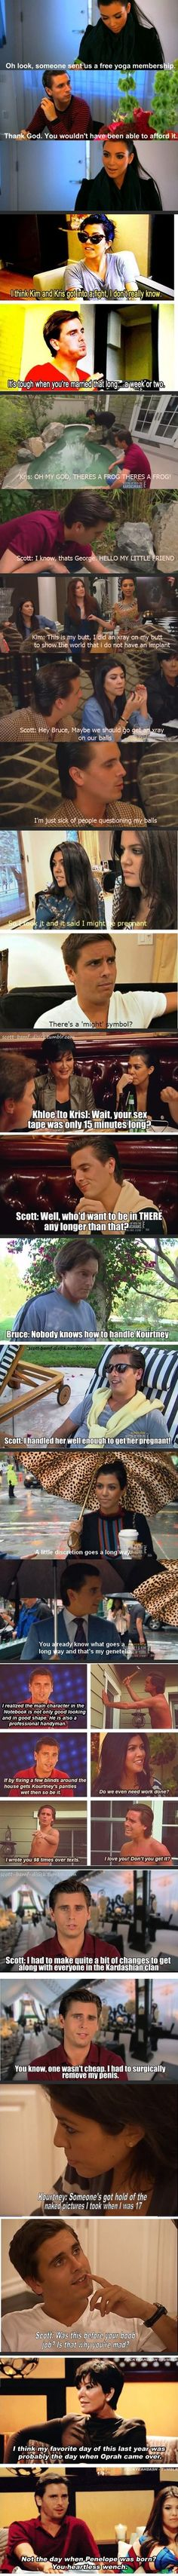 Lord Scott Disick